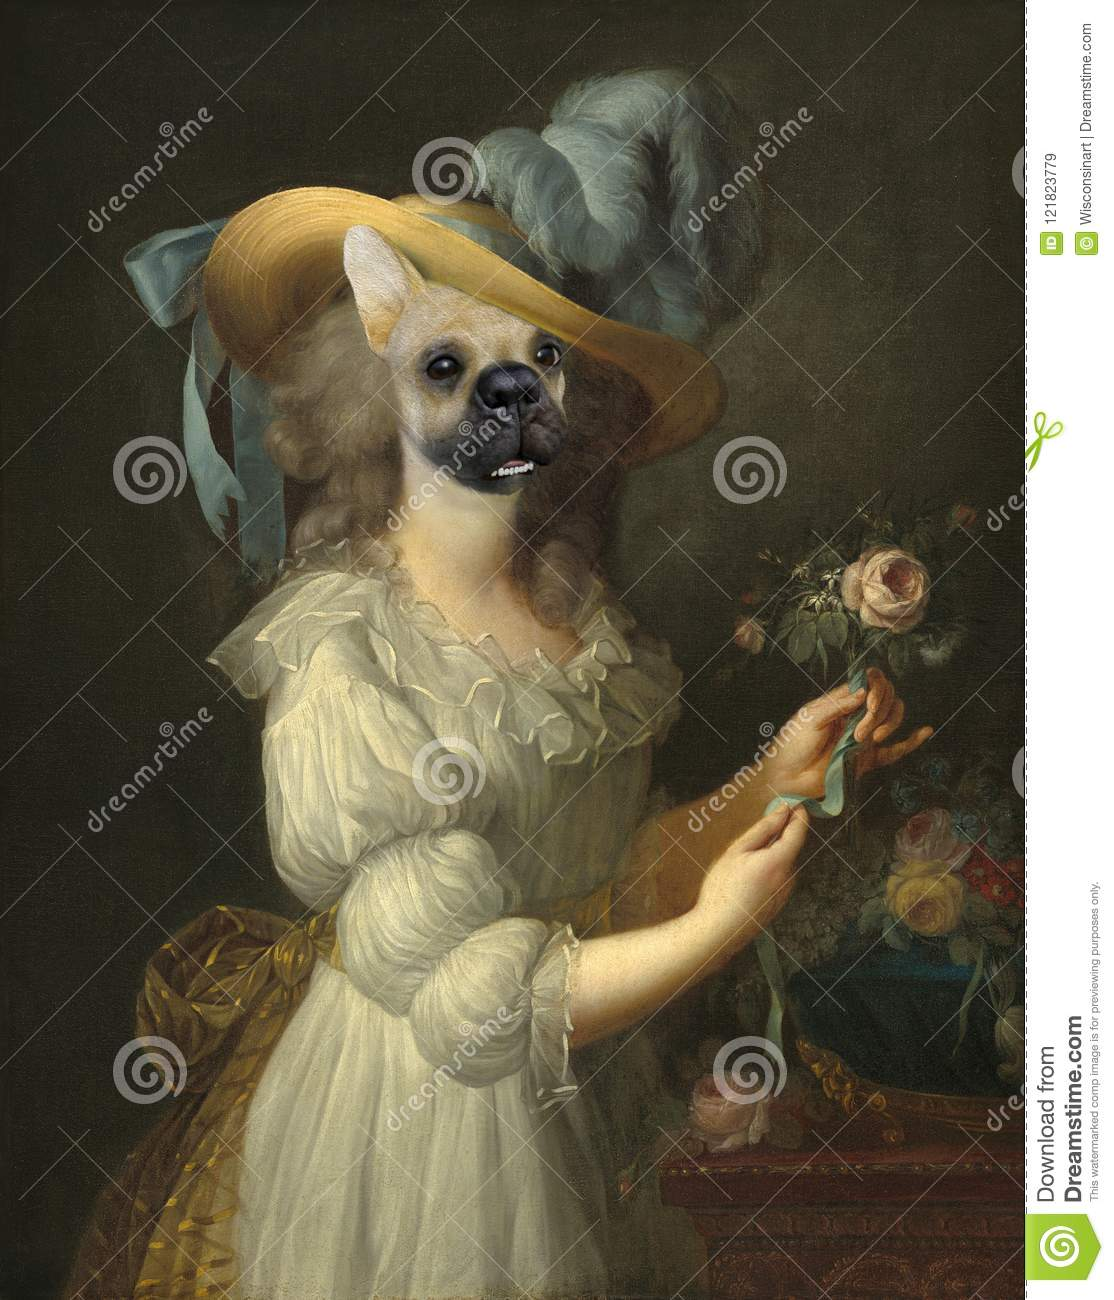 Funny Dog, Marie Anoinette, Surreal Oil Painting